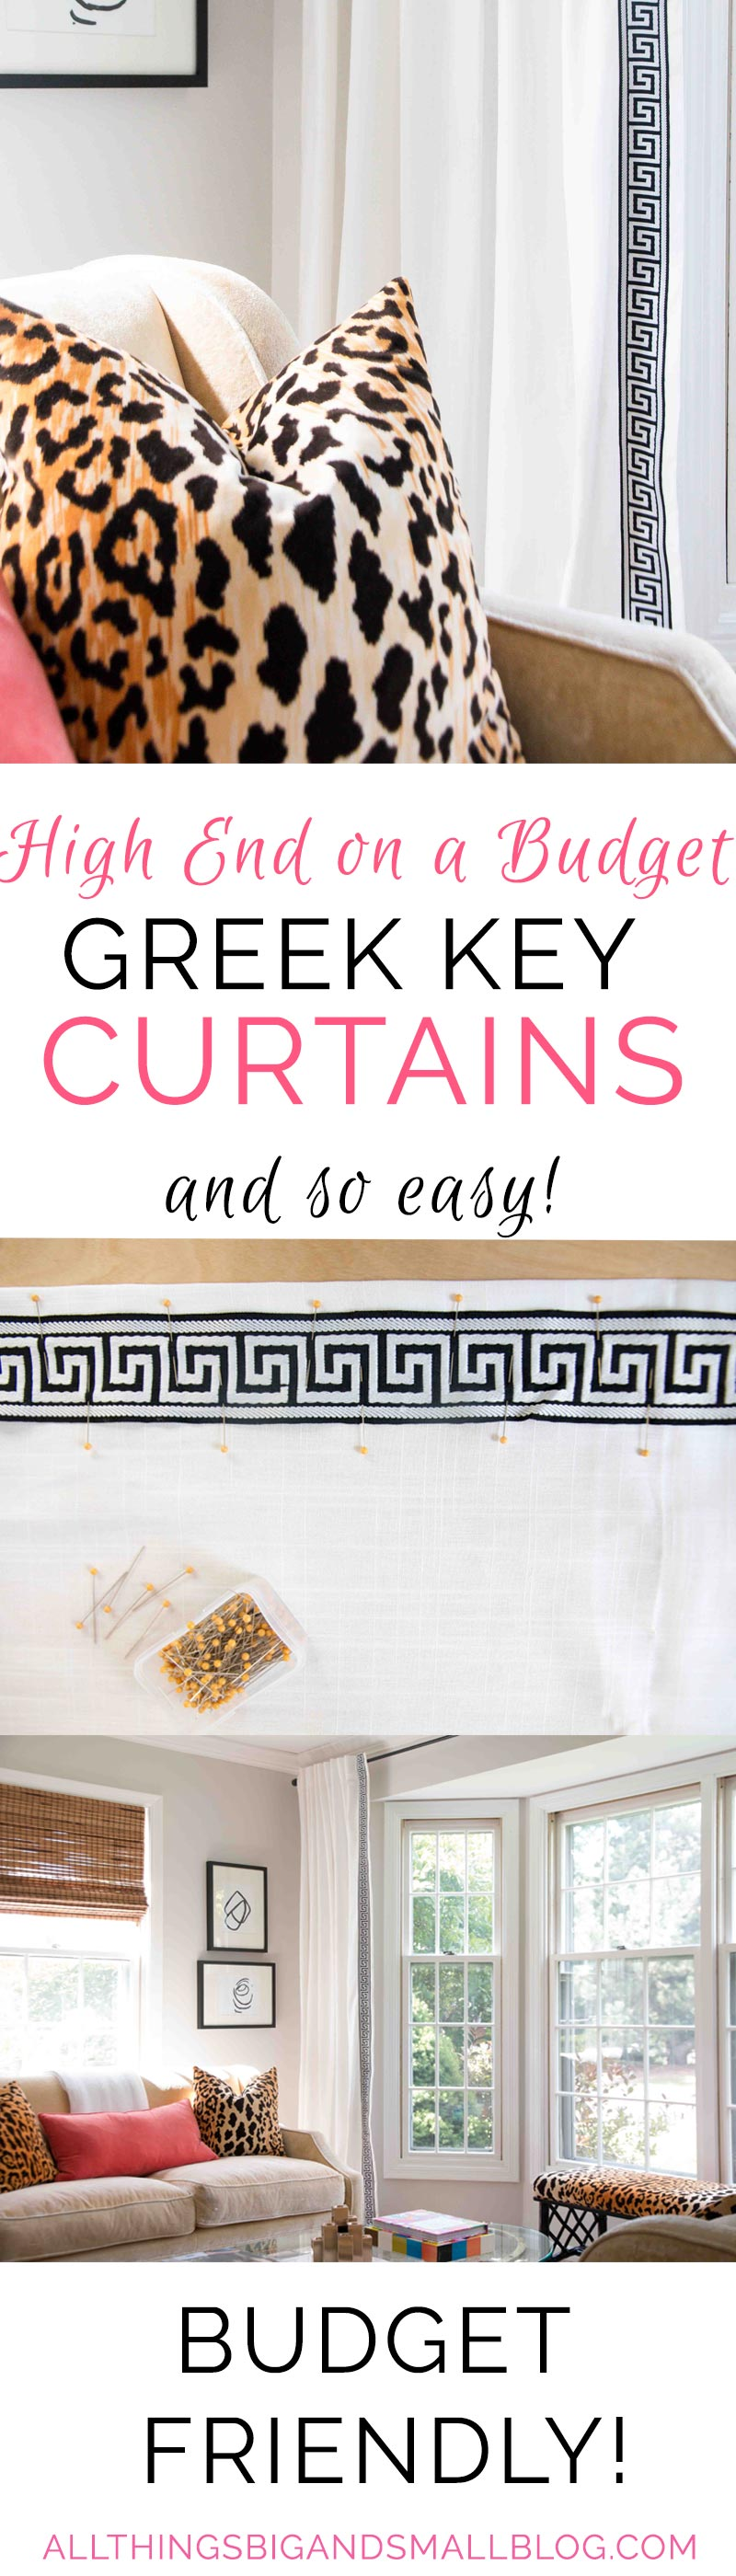 Budget Friendly DIY Greek Key Curtains | DIY Curtains | Greek Key Trim | ALL THINGS BIG AND SMALL BLOG